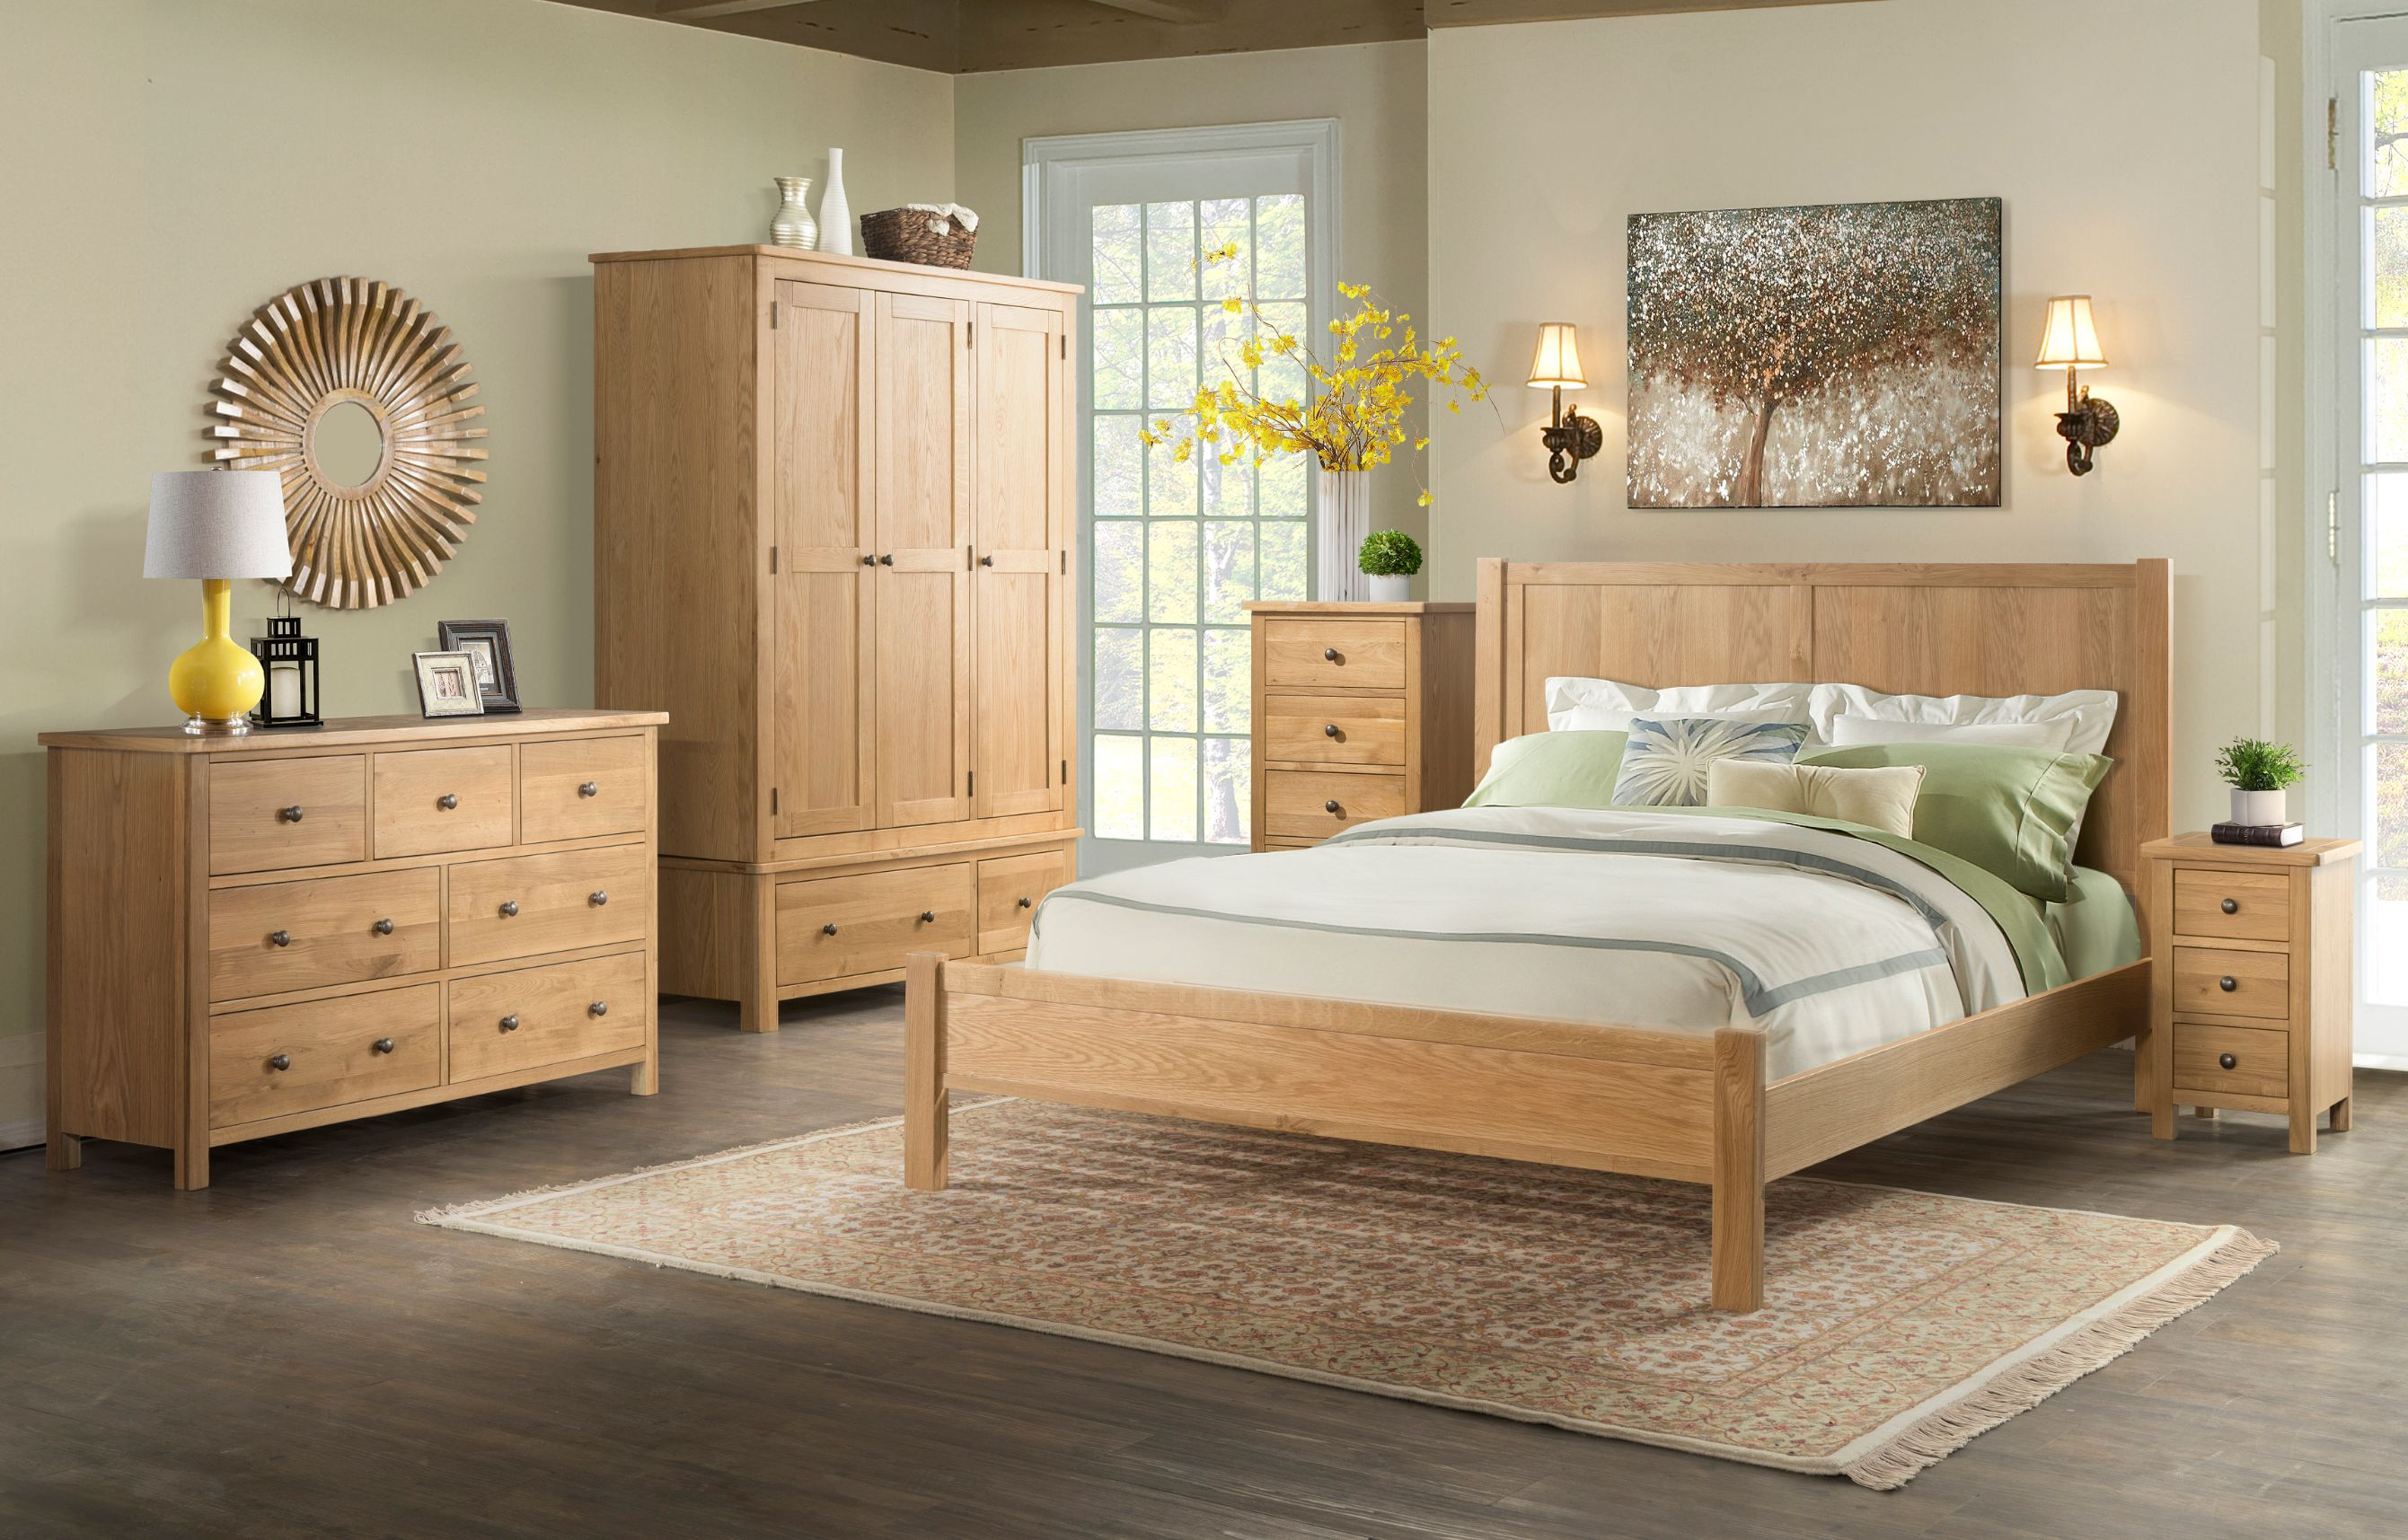 Devonshire Pine - BROUGH OAK - Bedroom